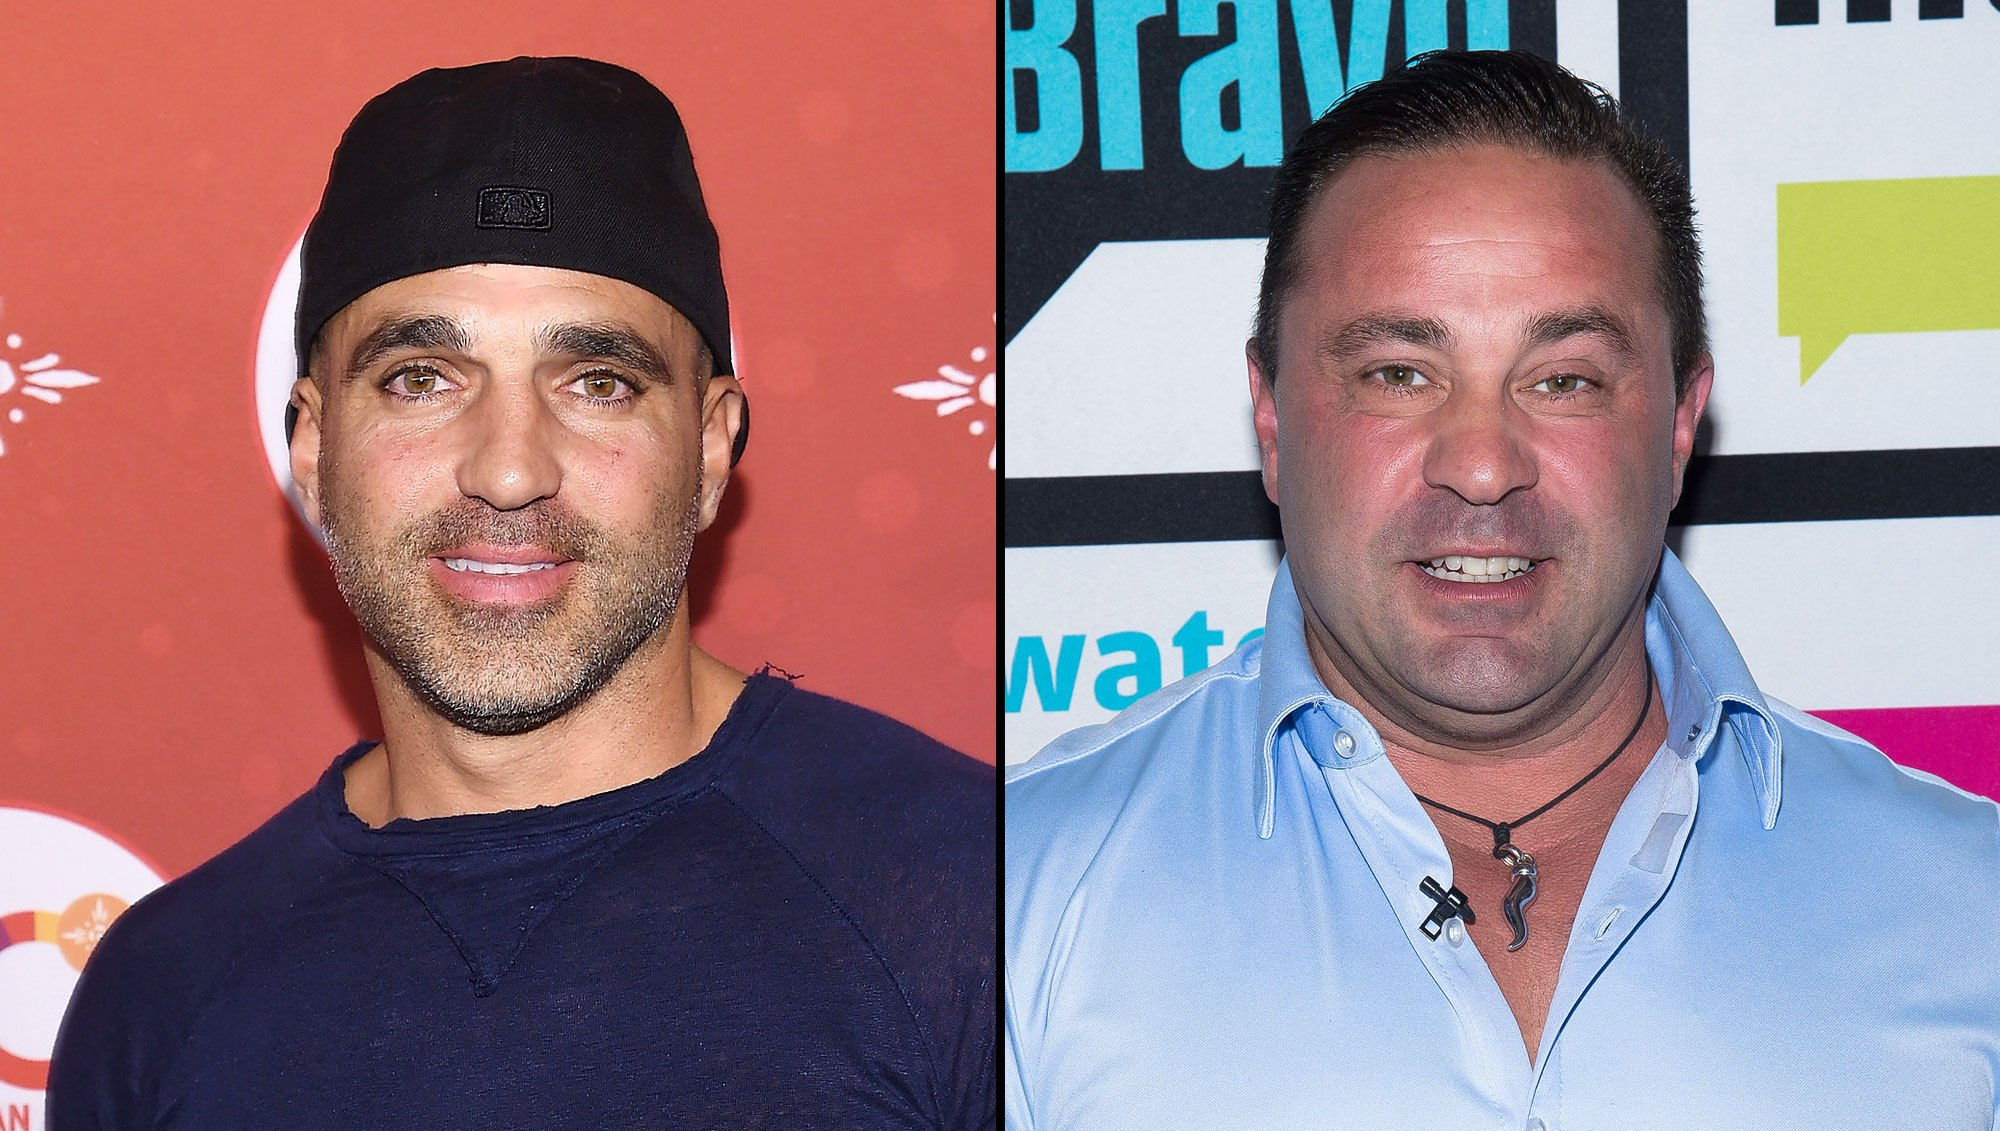 Joe Gorga Thinks 'It's a 50-50 Shot' Whether Joe Giudice Gets Out of Prison